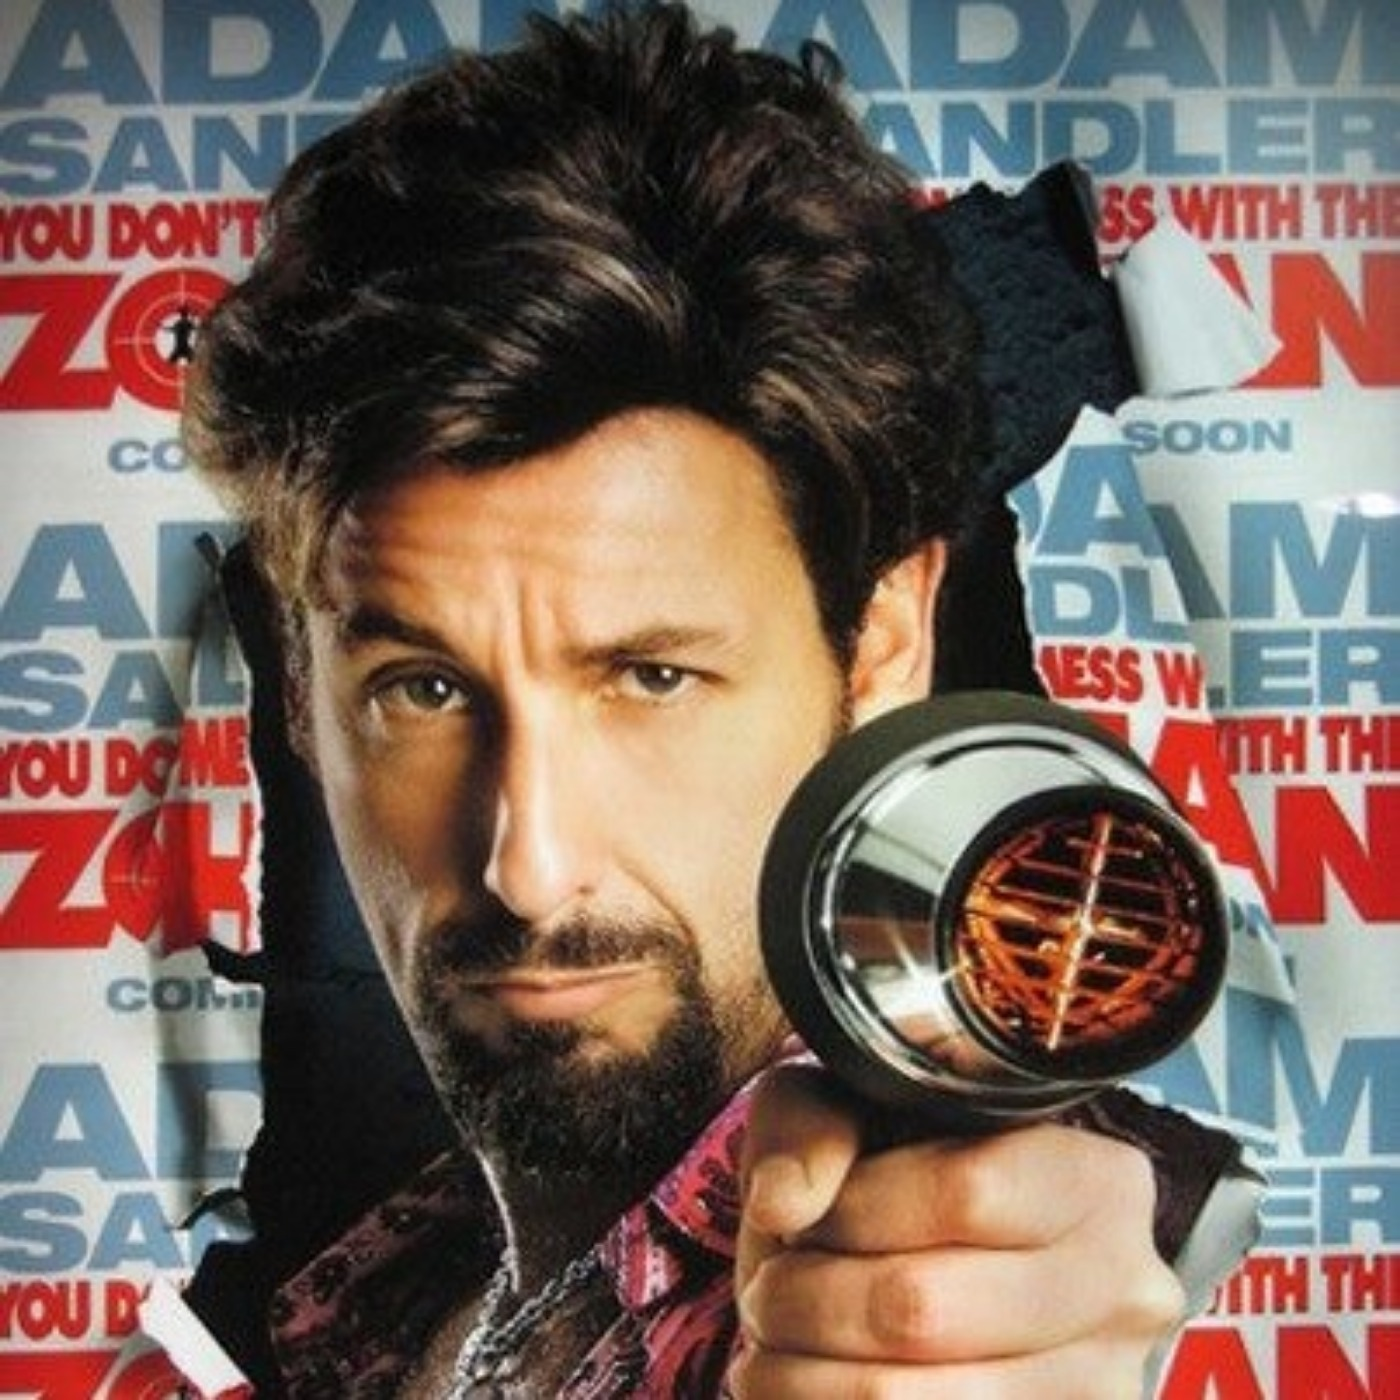 PODCAST CINEMA | critique du film RIEN QUE POUR VOS CHEVEUX / YOU DON'T MESS WITH THE ZOHAN